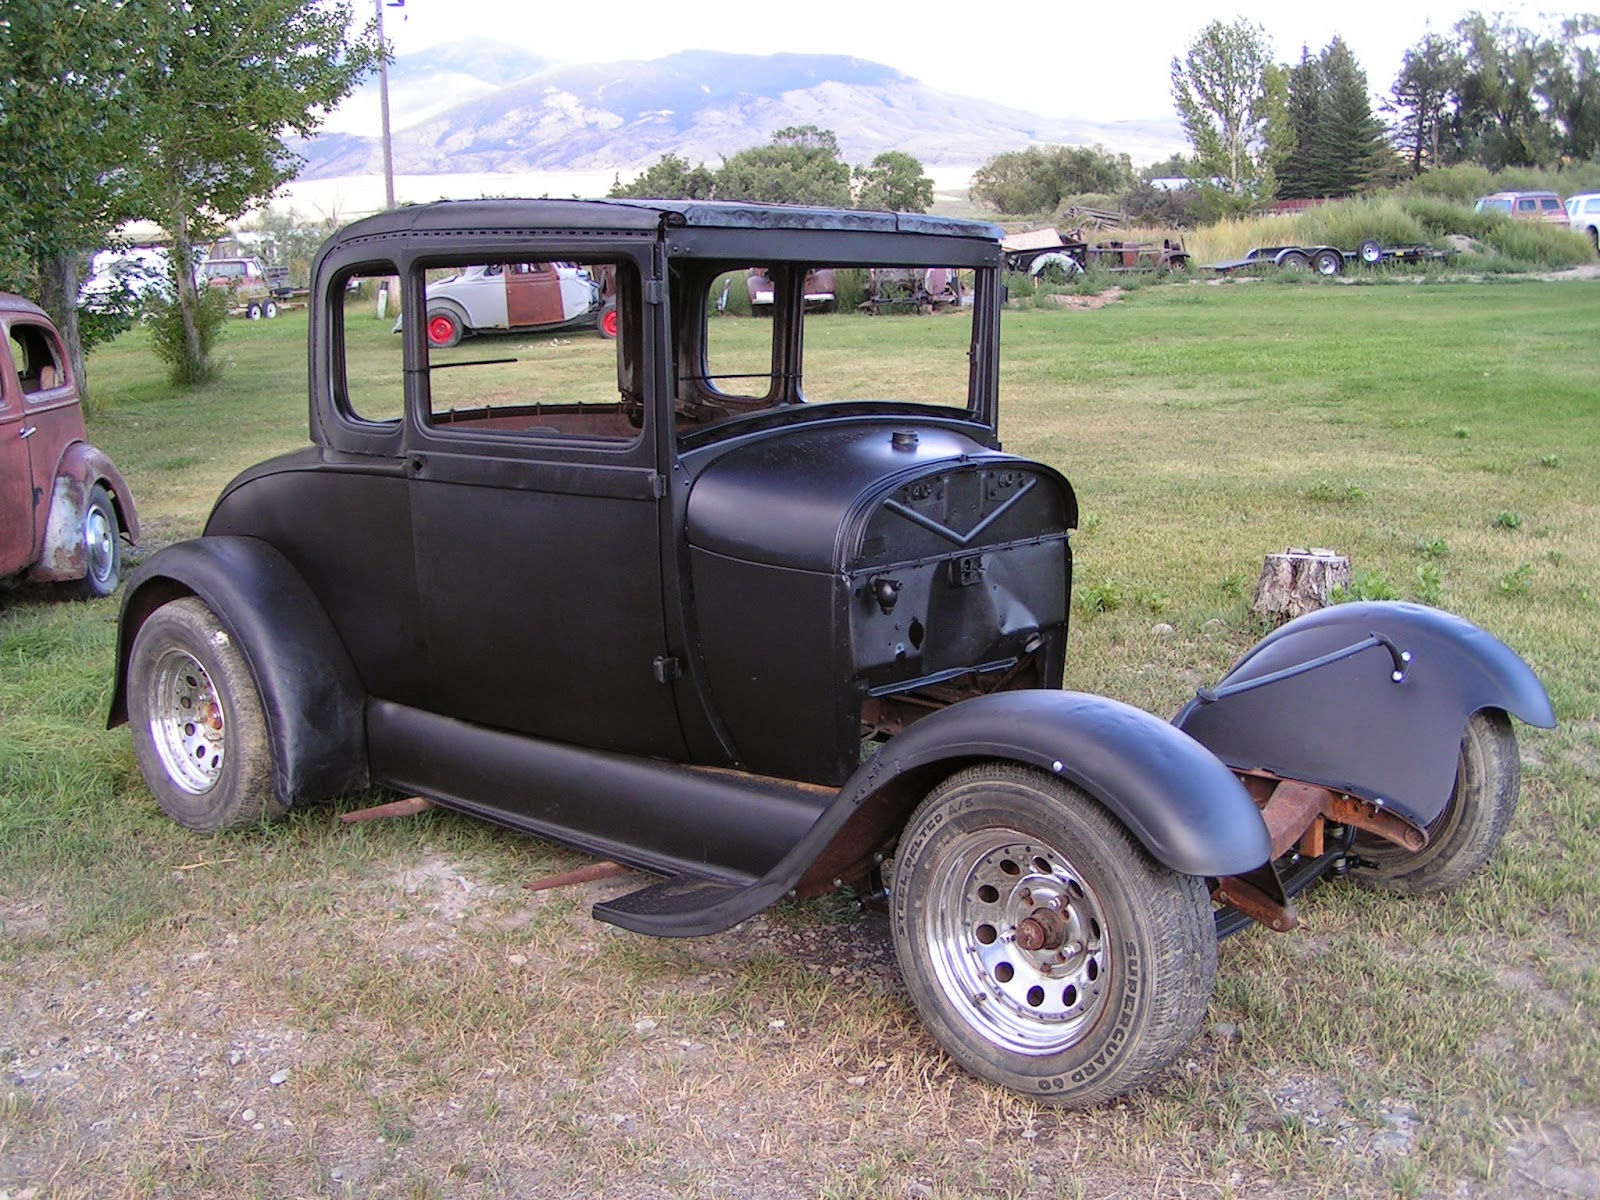 Reel Rods Inc.: FOR SALE: 1928 Ford Model A Special Coupe SOLD SOLD SOLD